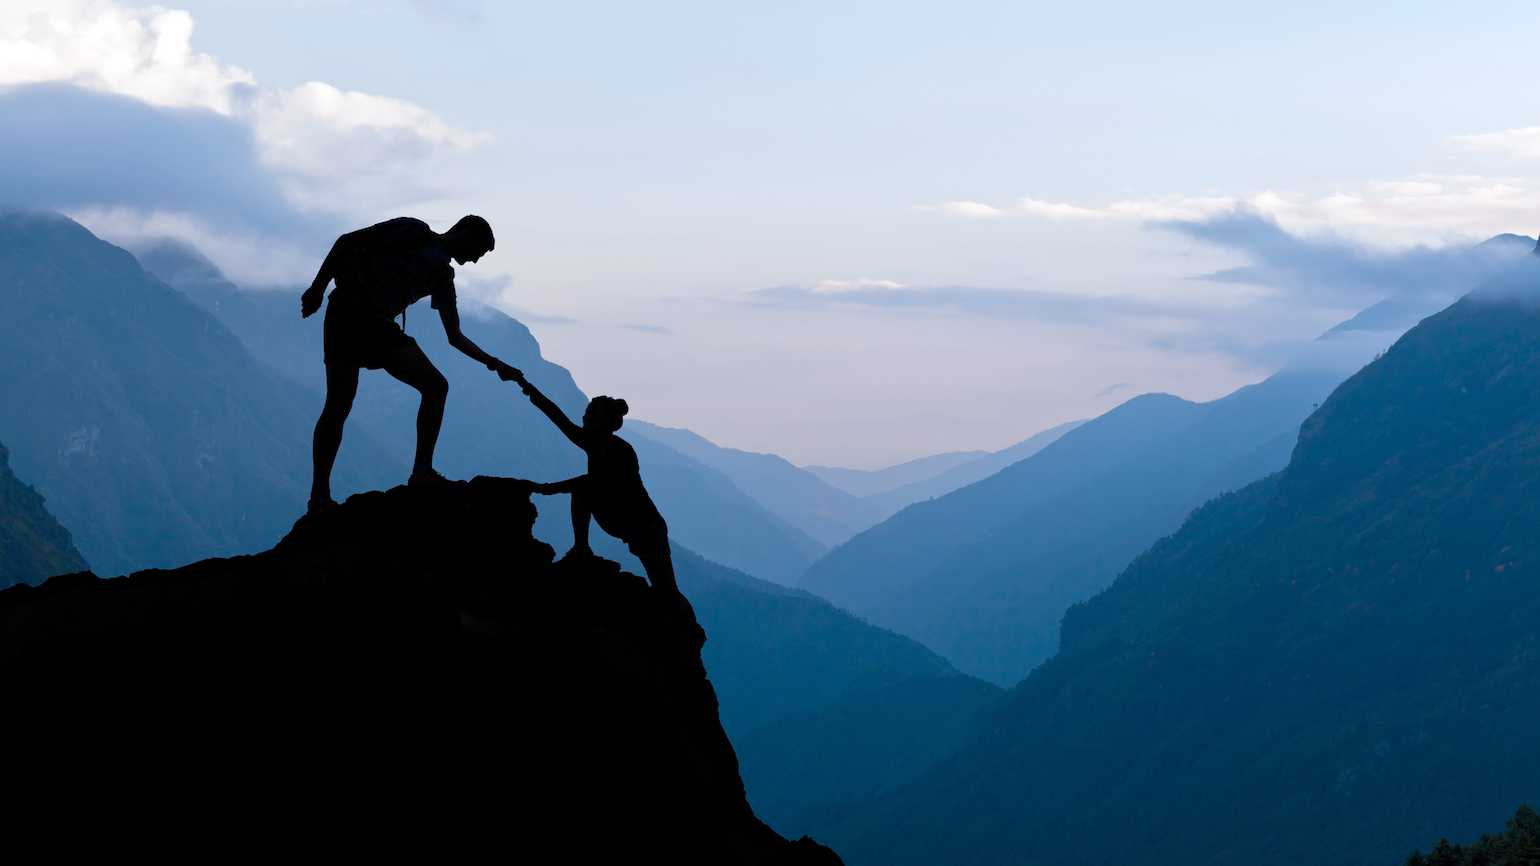 Building a relationship with God based on trust